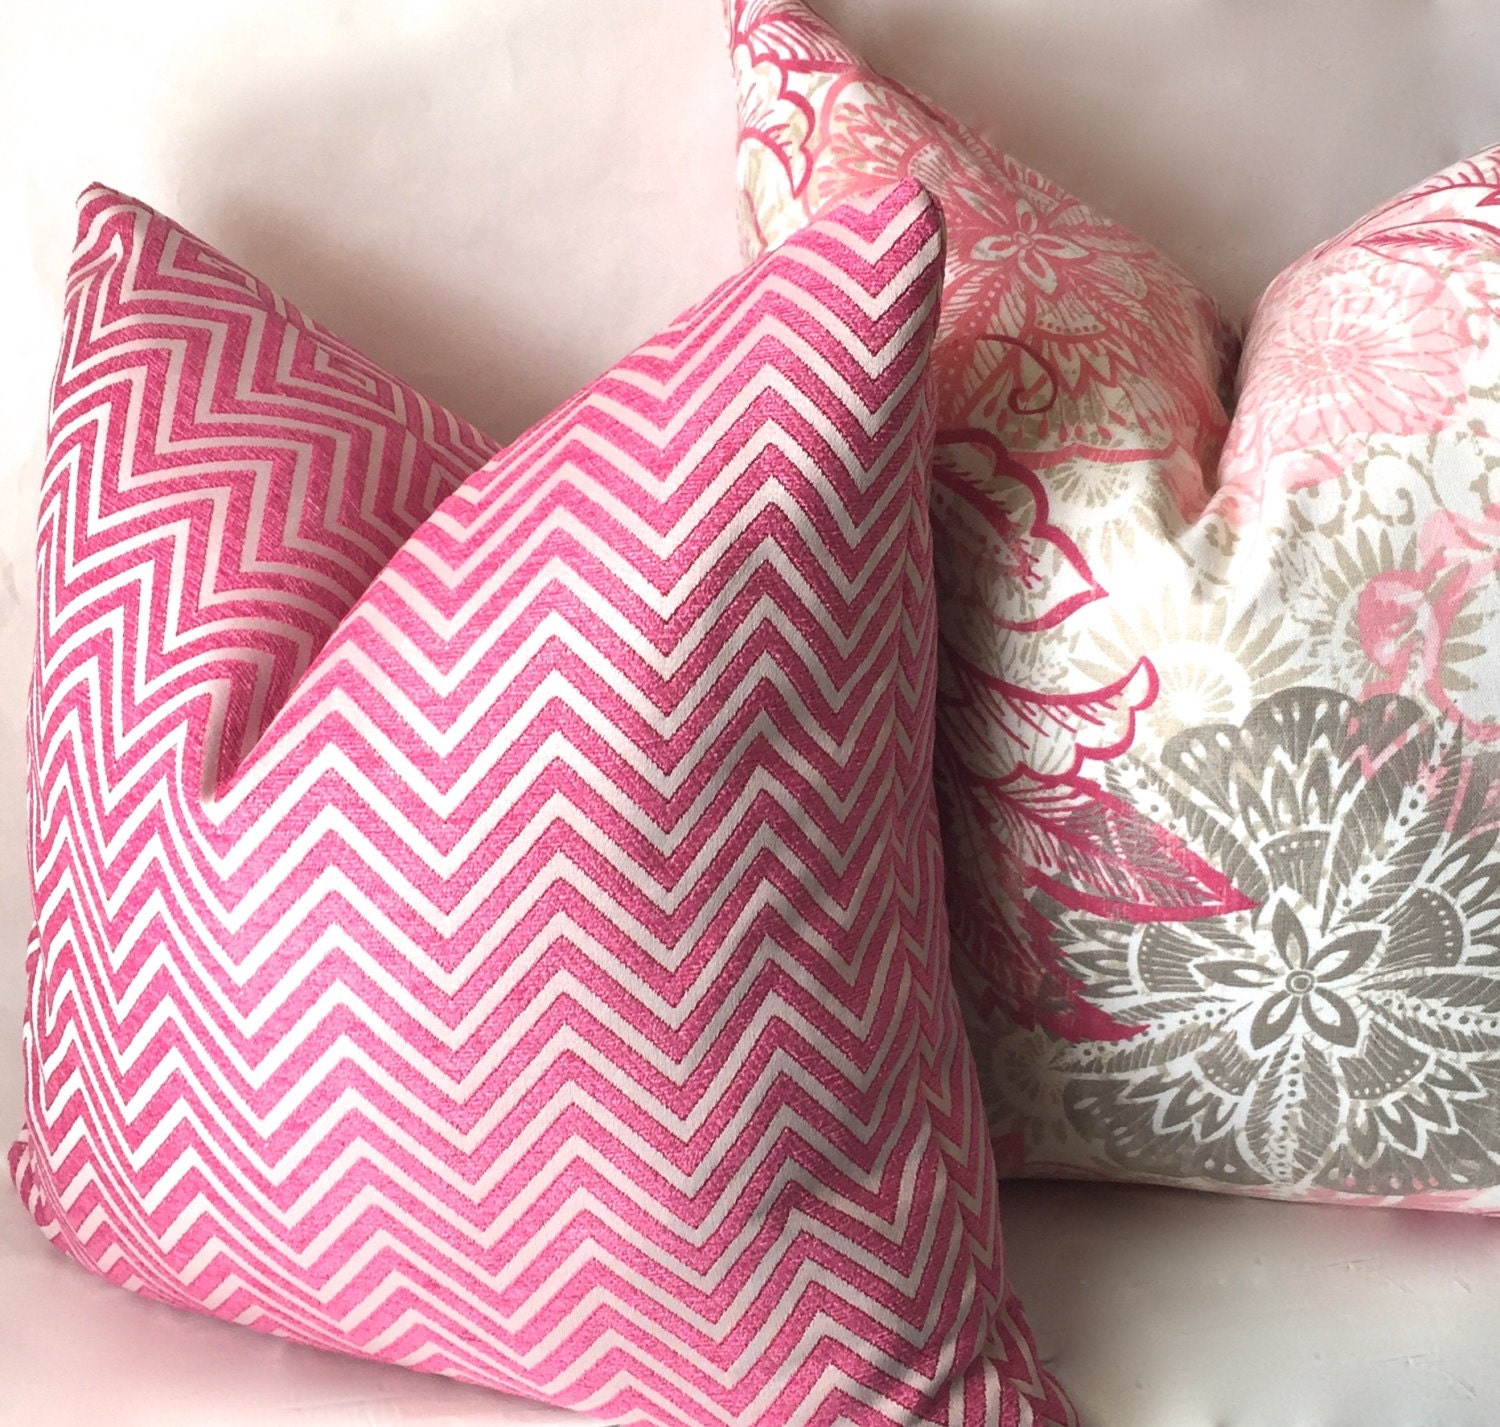 pink chevron throw pillow hot pink geometric pillow covers. Black Bedroom Furniture Sets. Home Design Ideas